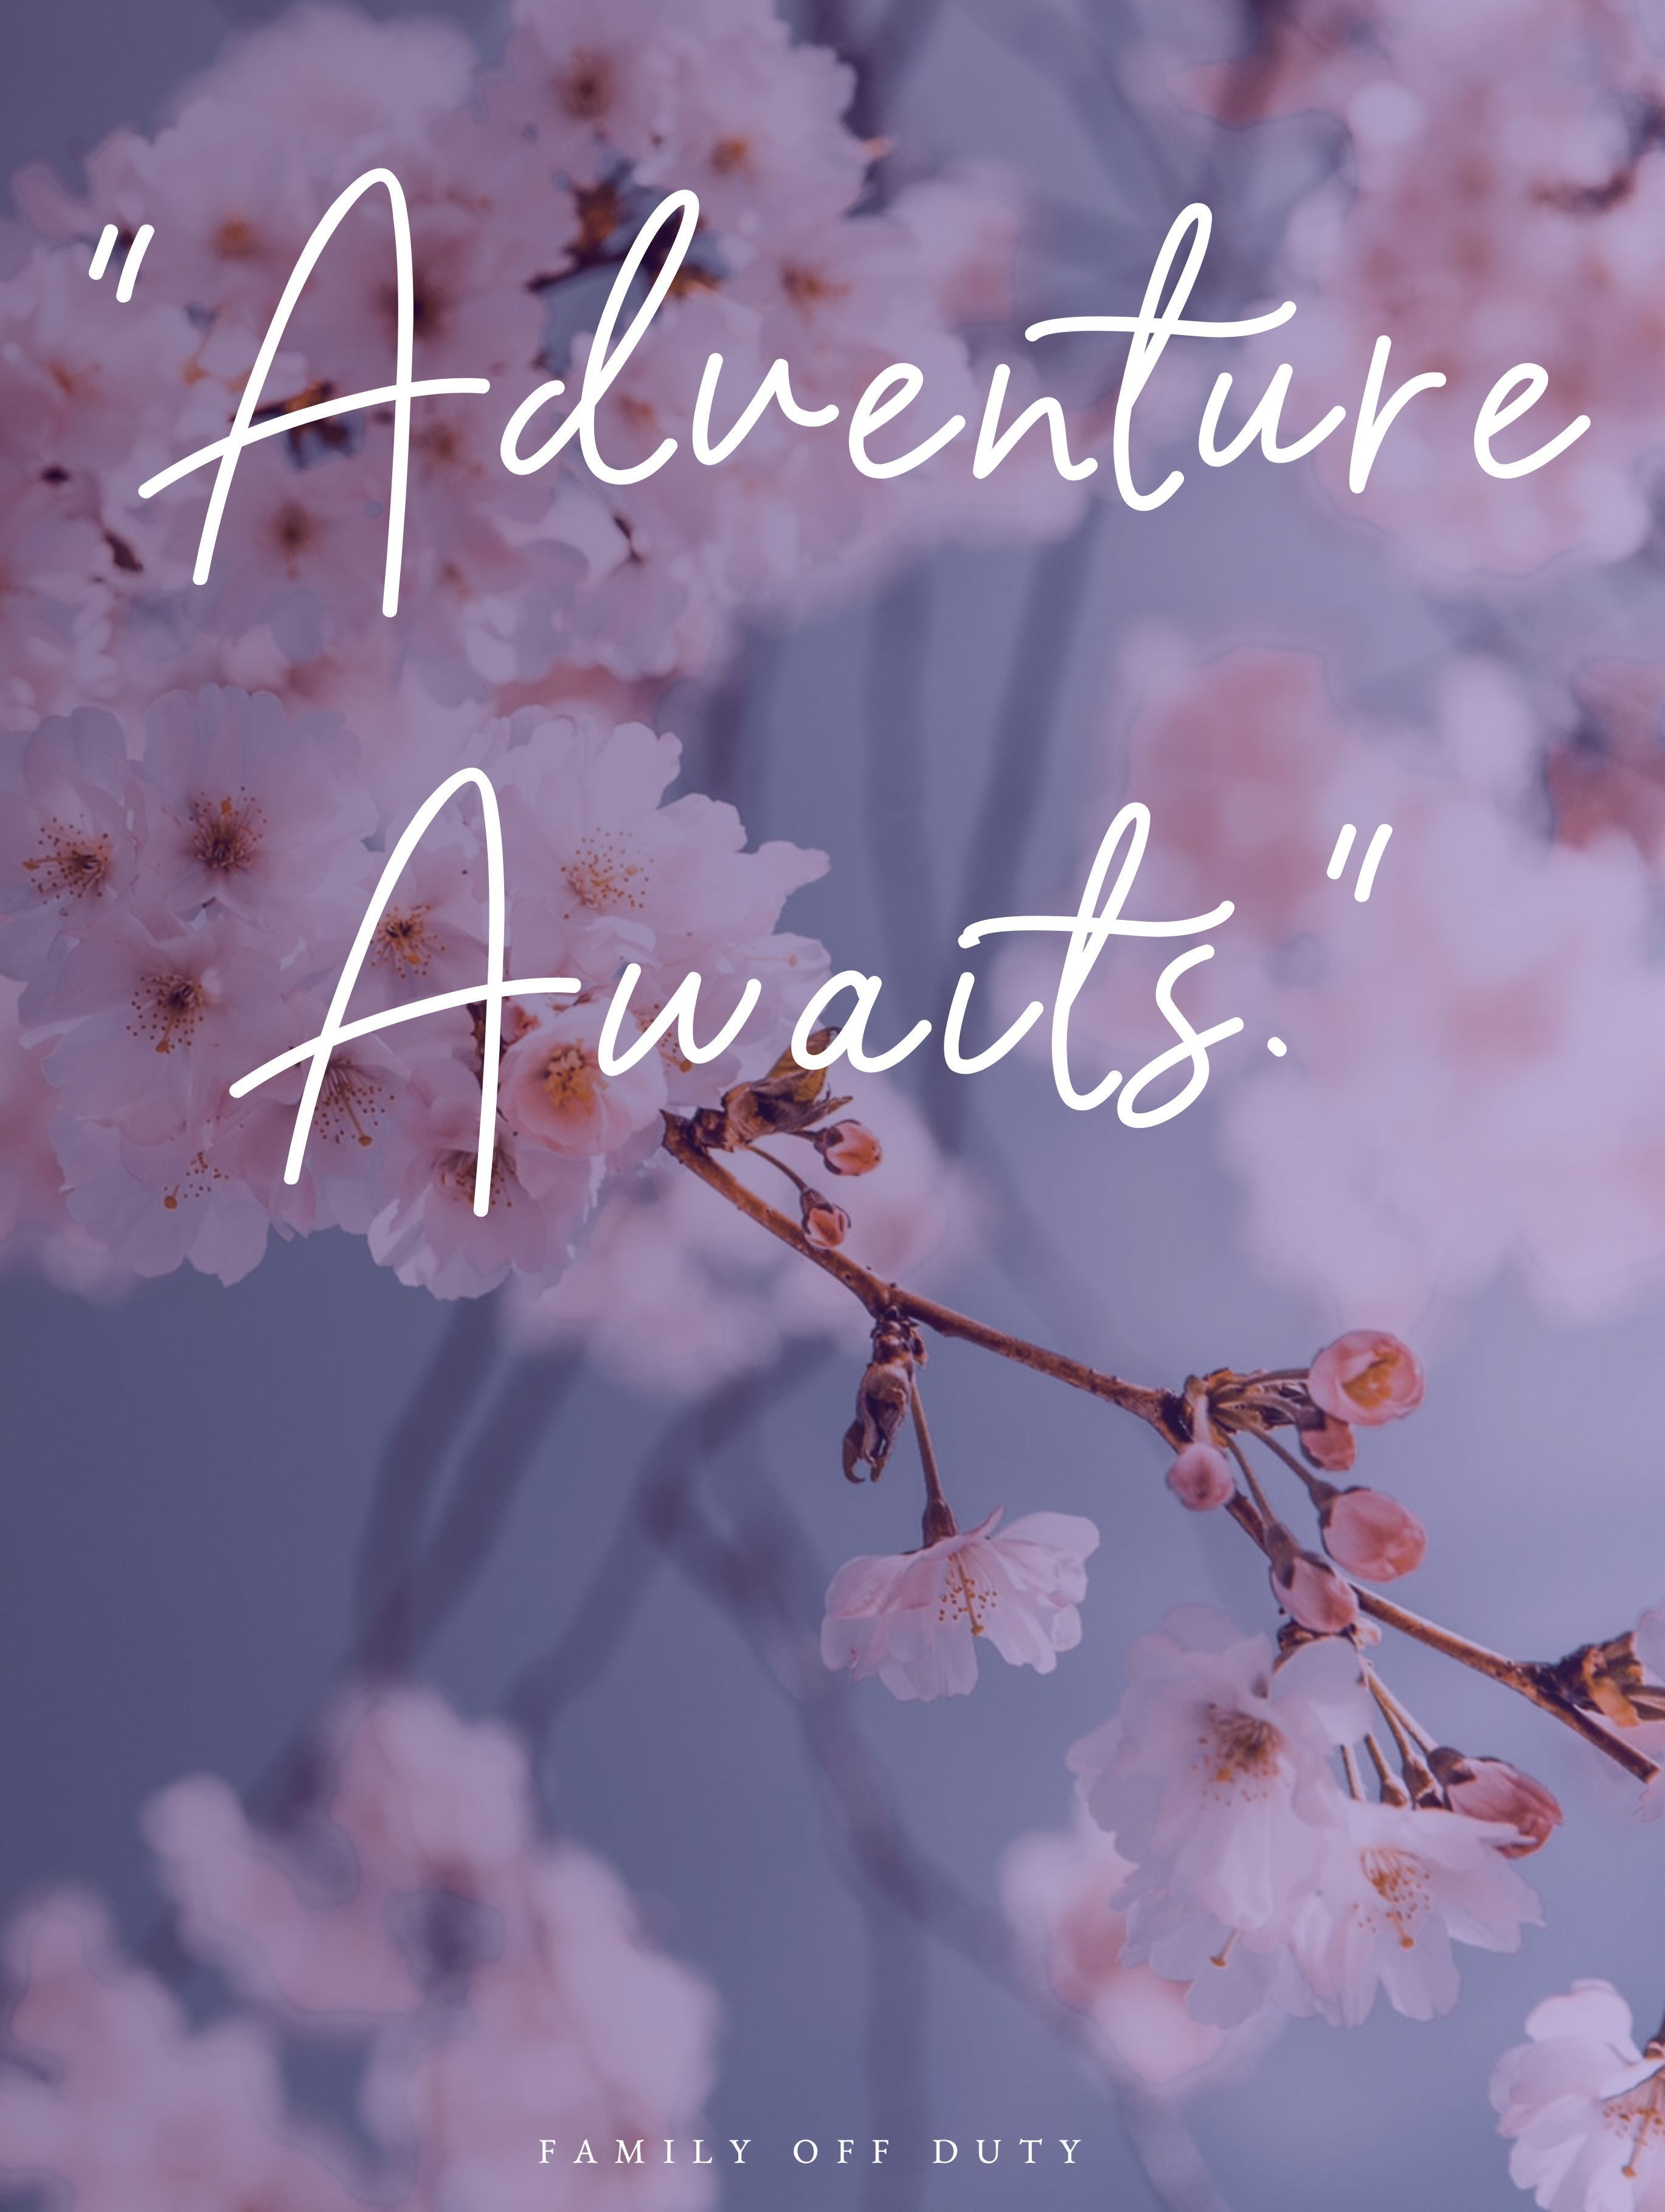 Family Travel Quotes 25 Best Inspirational Quotes For The Traveling Family Family Vacation Quotes Vacation Quotes Family Travel Quotes